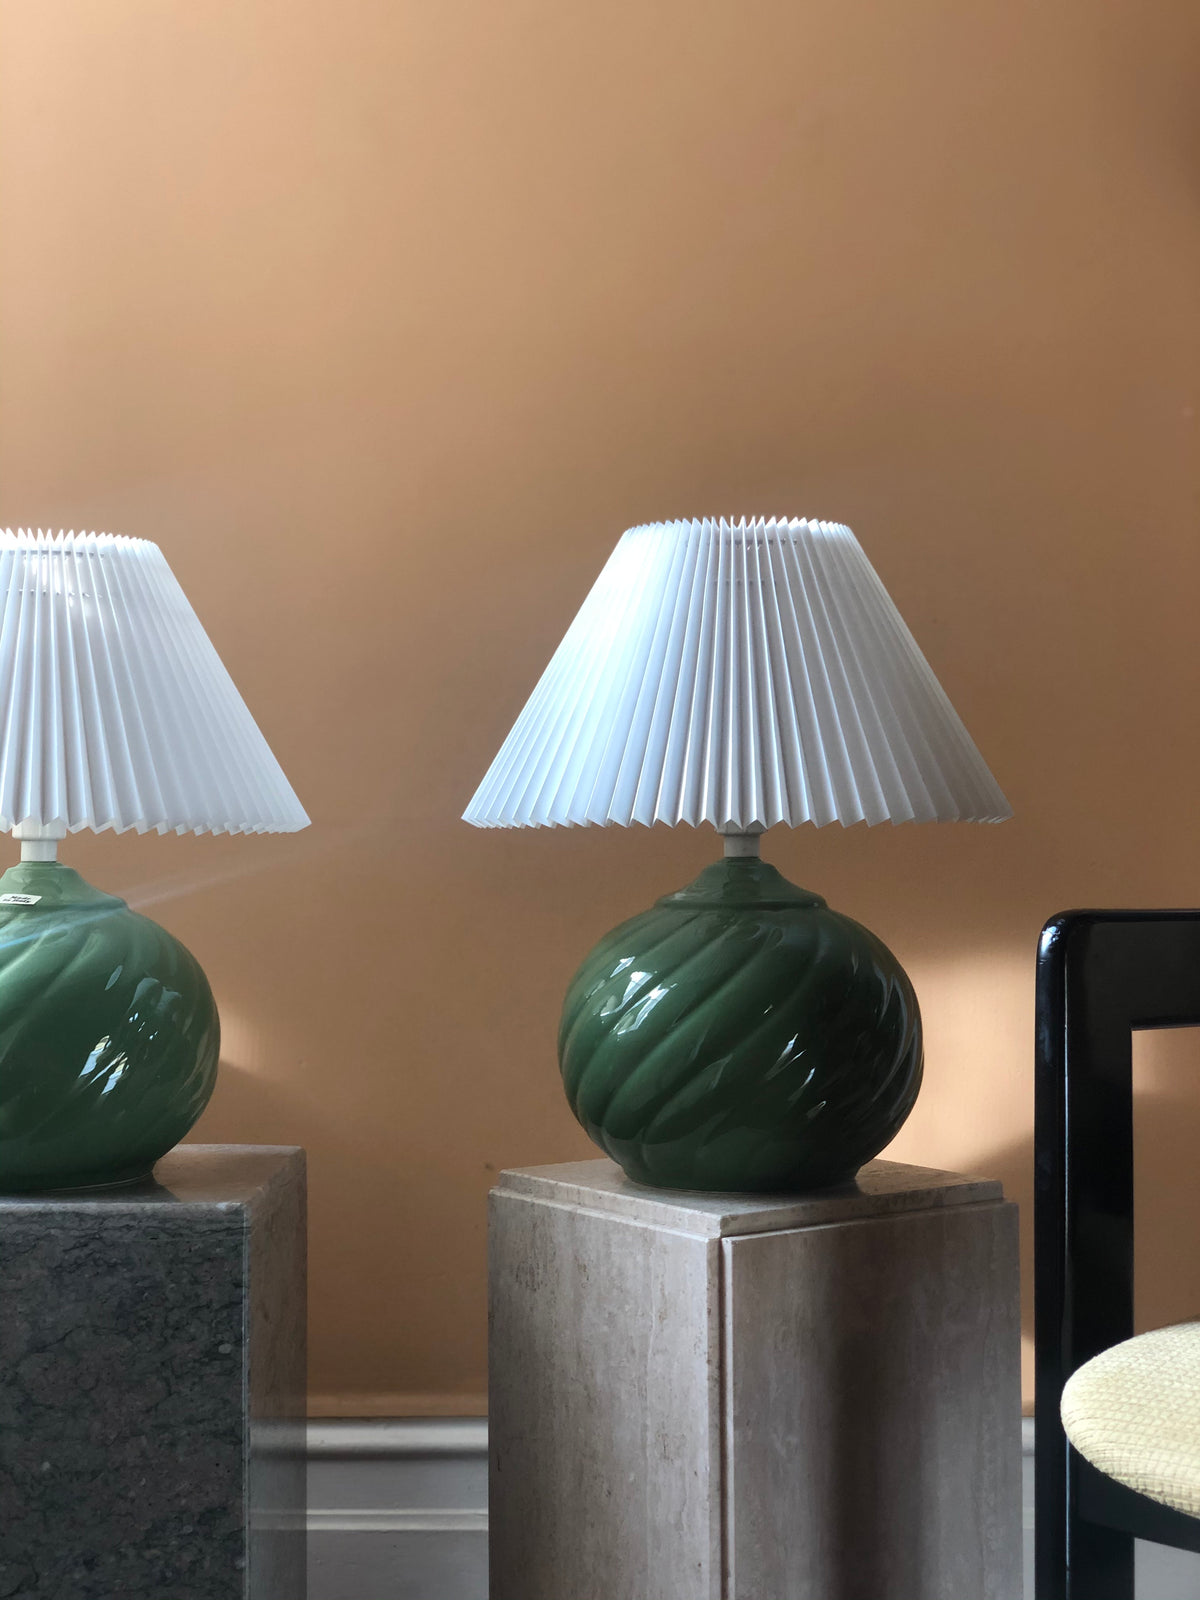 Green swirl Italian lamps with white pleated shade